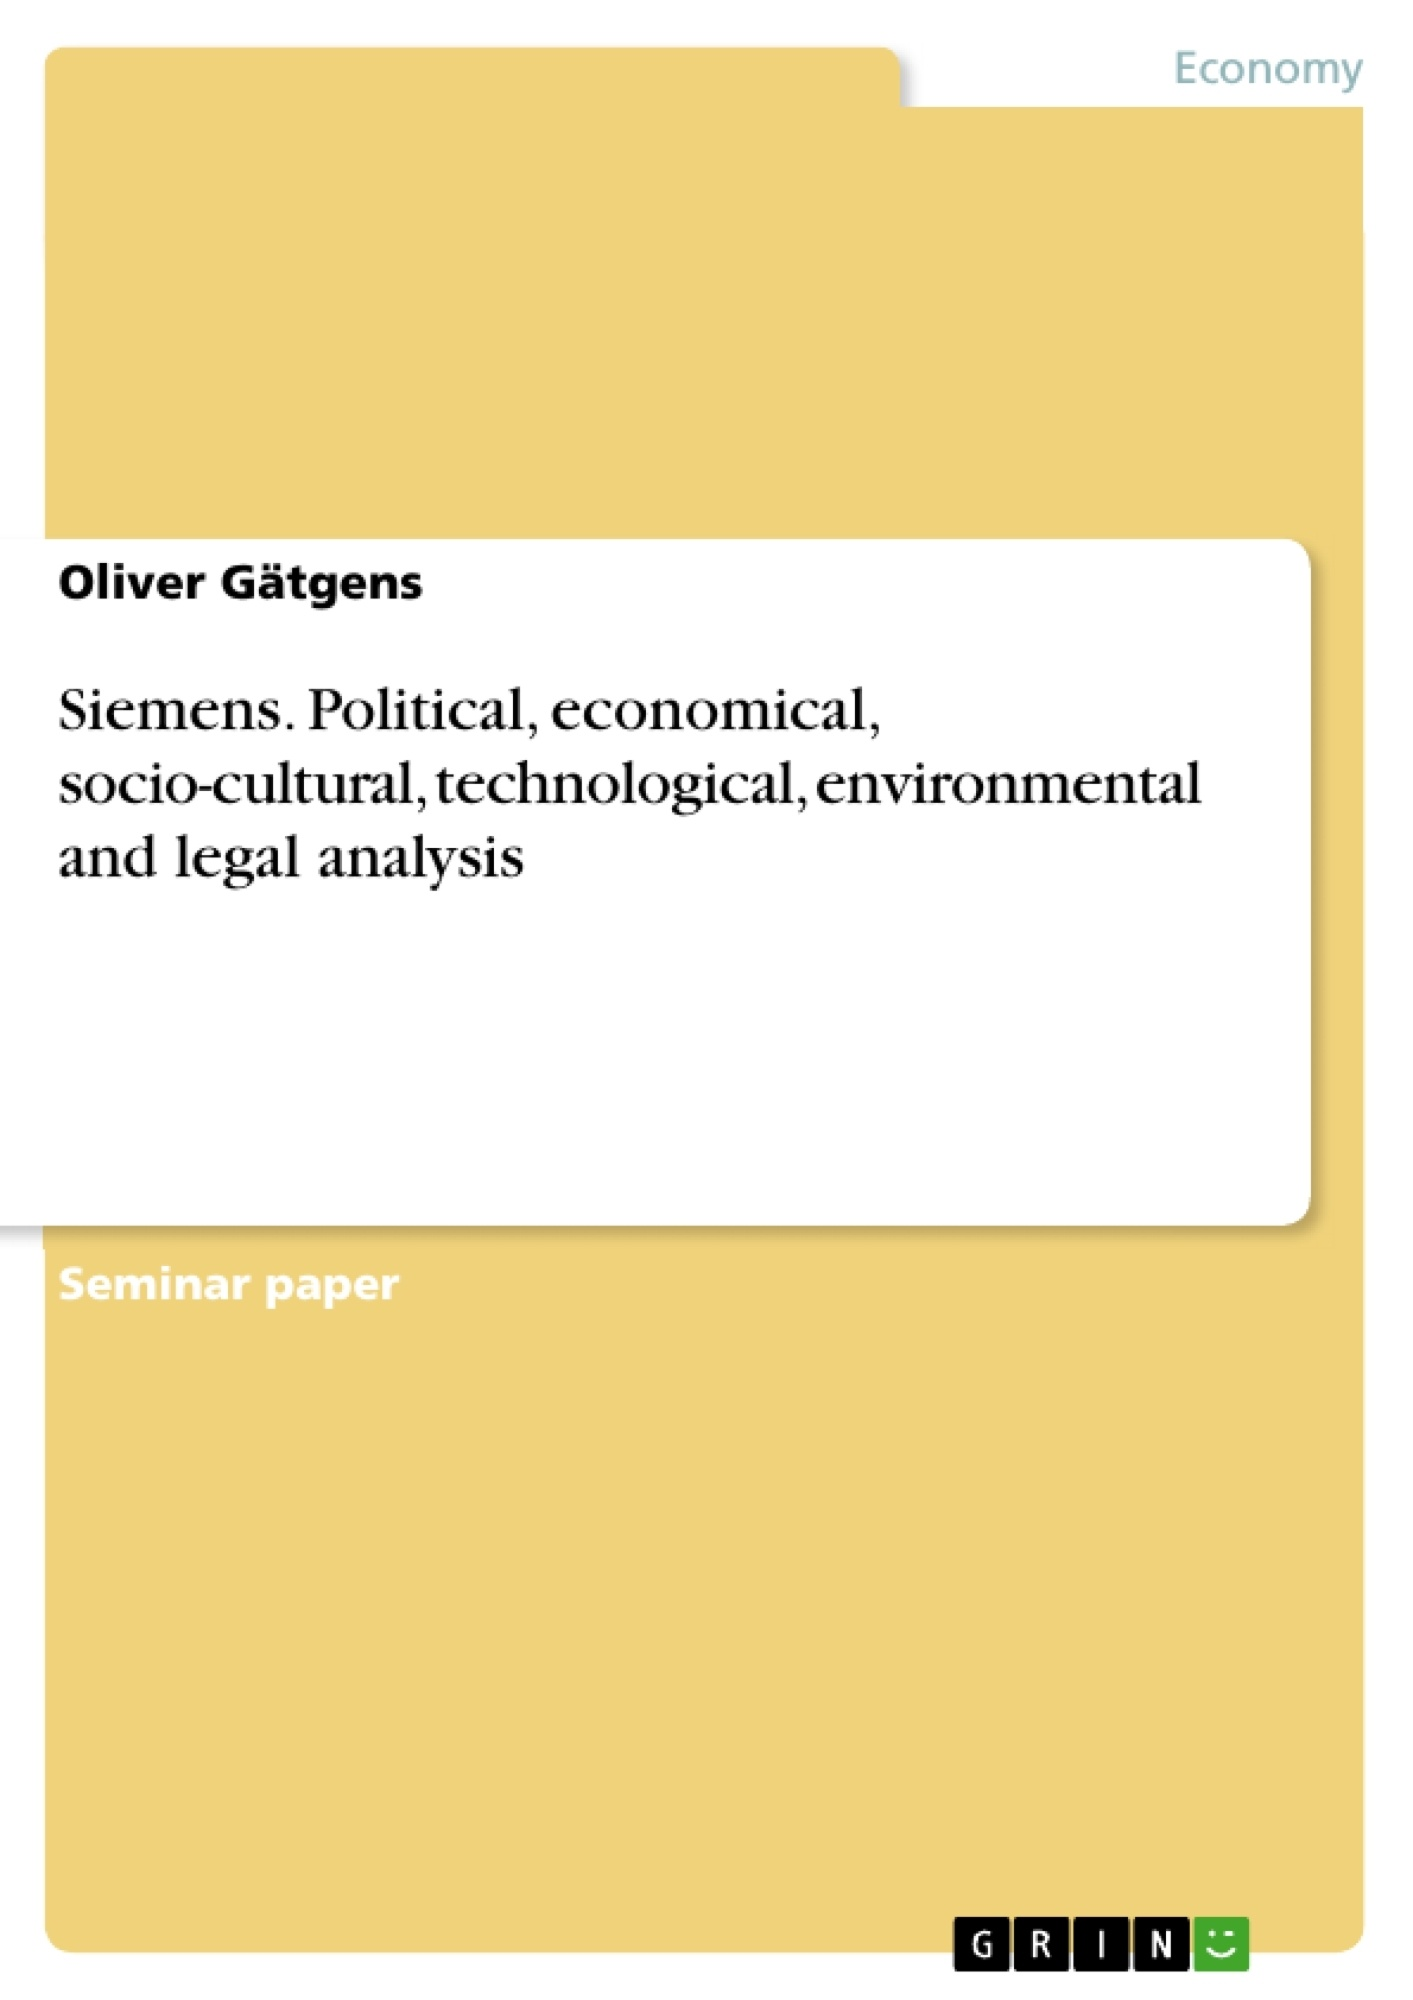 Title: Siemens. Political, economical, socio-cultural, technological, environmental and legal analysis